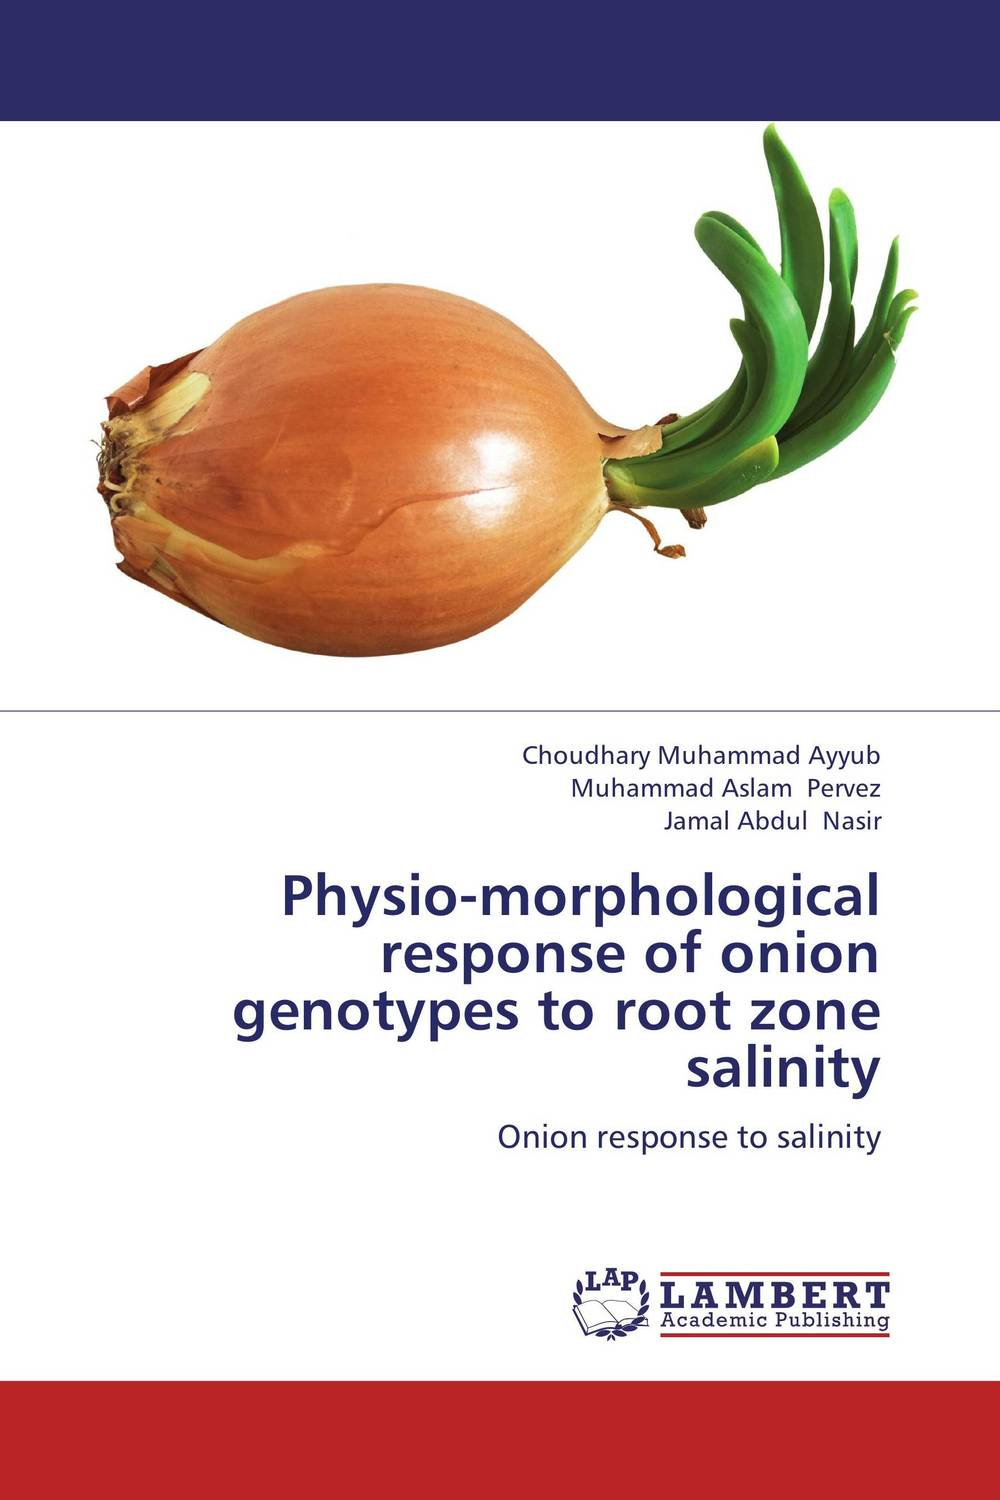 Physio-morphological response of onion genotypes to root zone salinity the teeth with root canal students to practice root canal preparation and filling actually